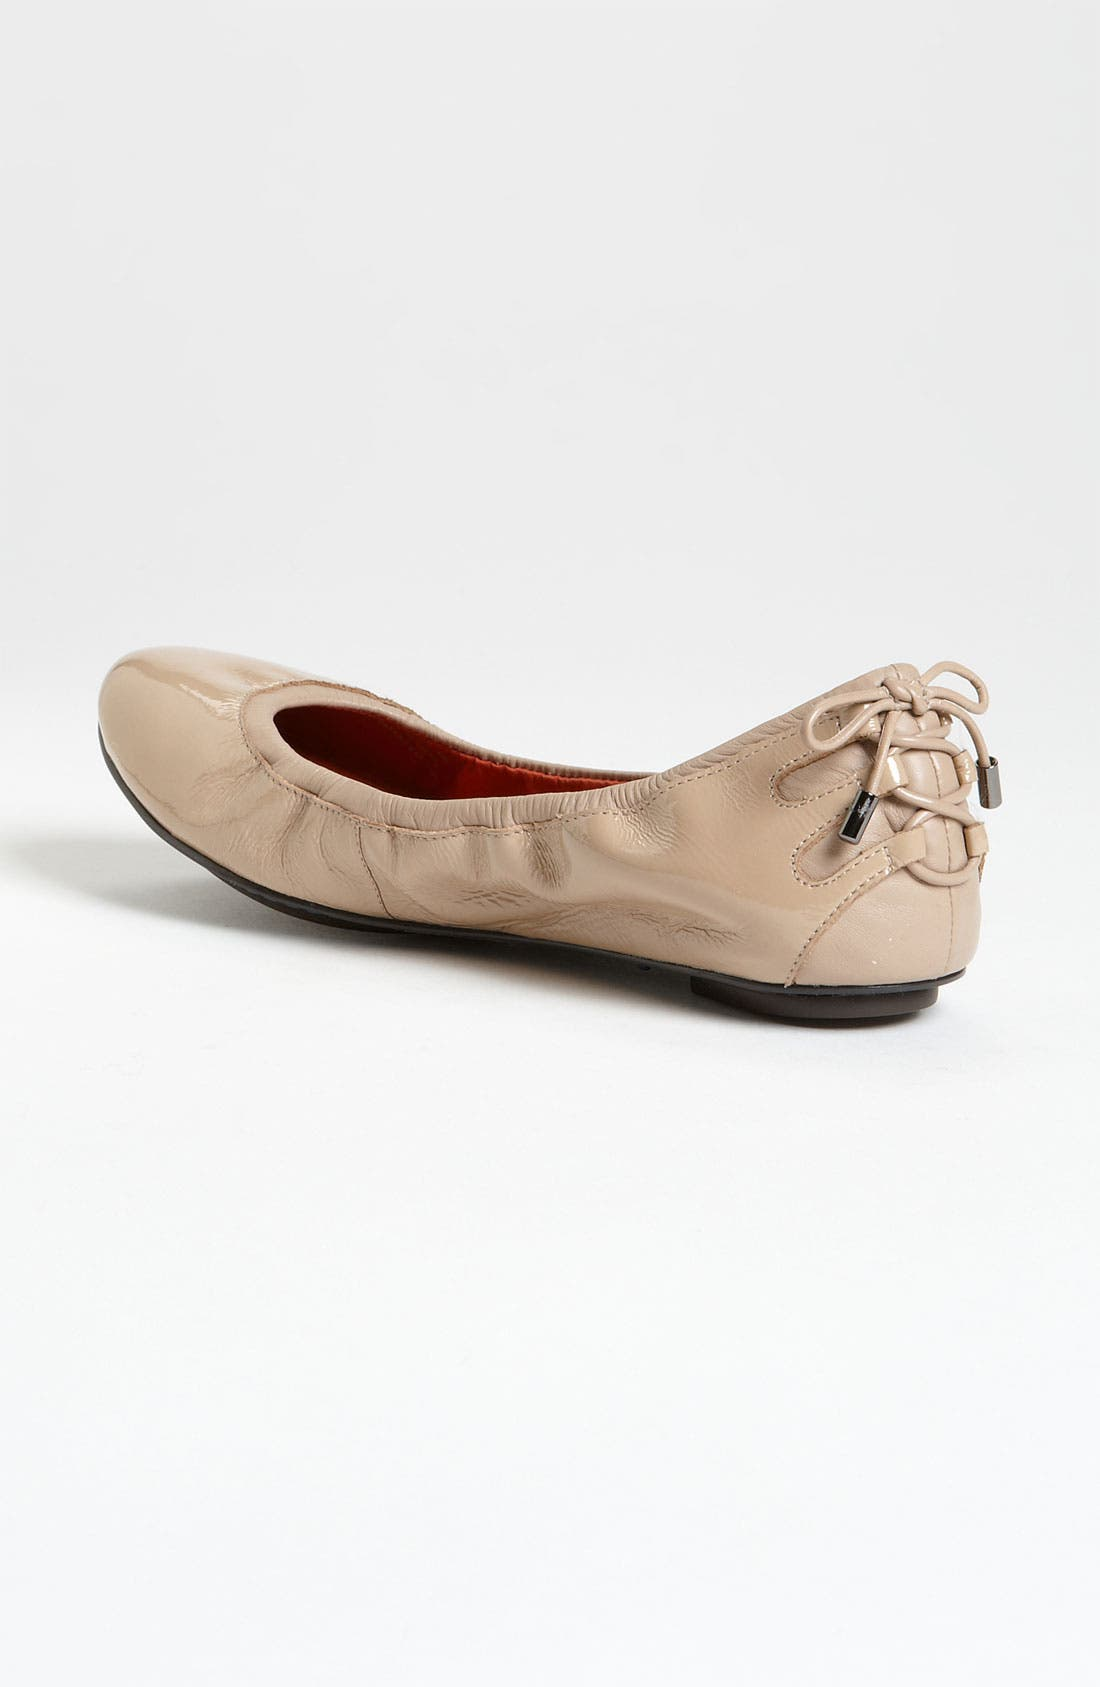 ,                             Maria Sharapova by Cole Haan 'Air Bacara' Flat,                             Alternate thumbnail 41, color,                             252